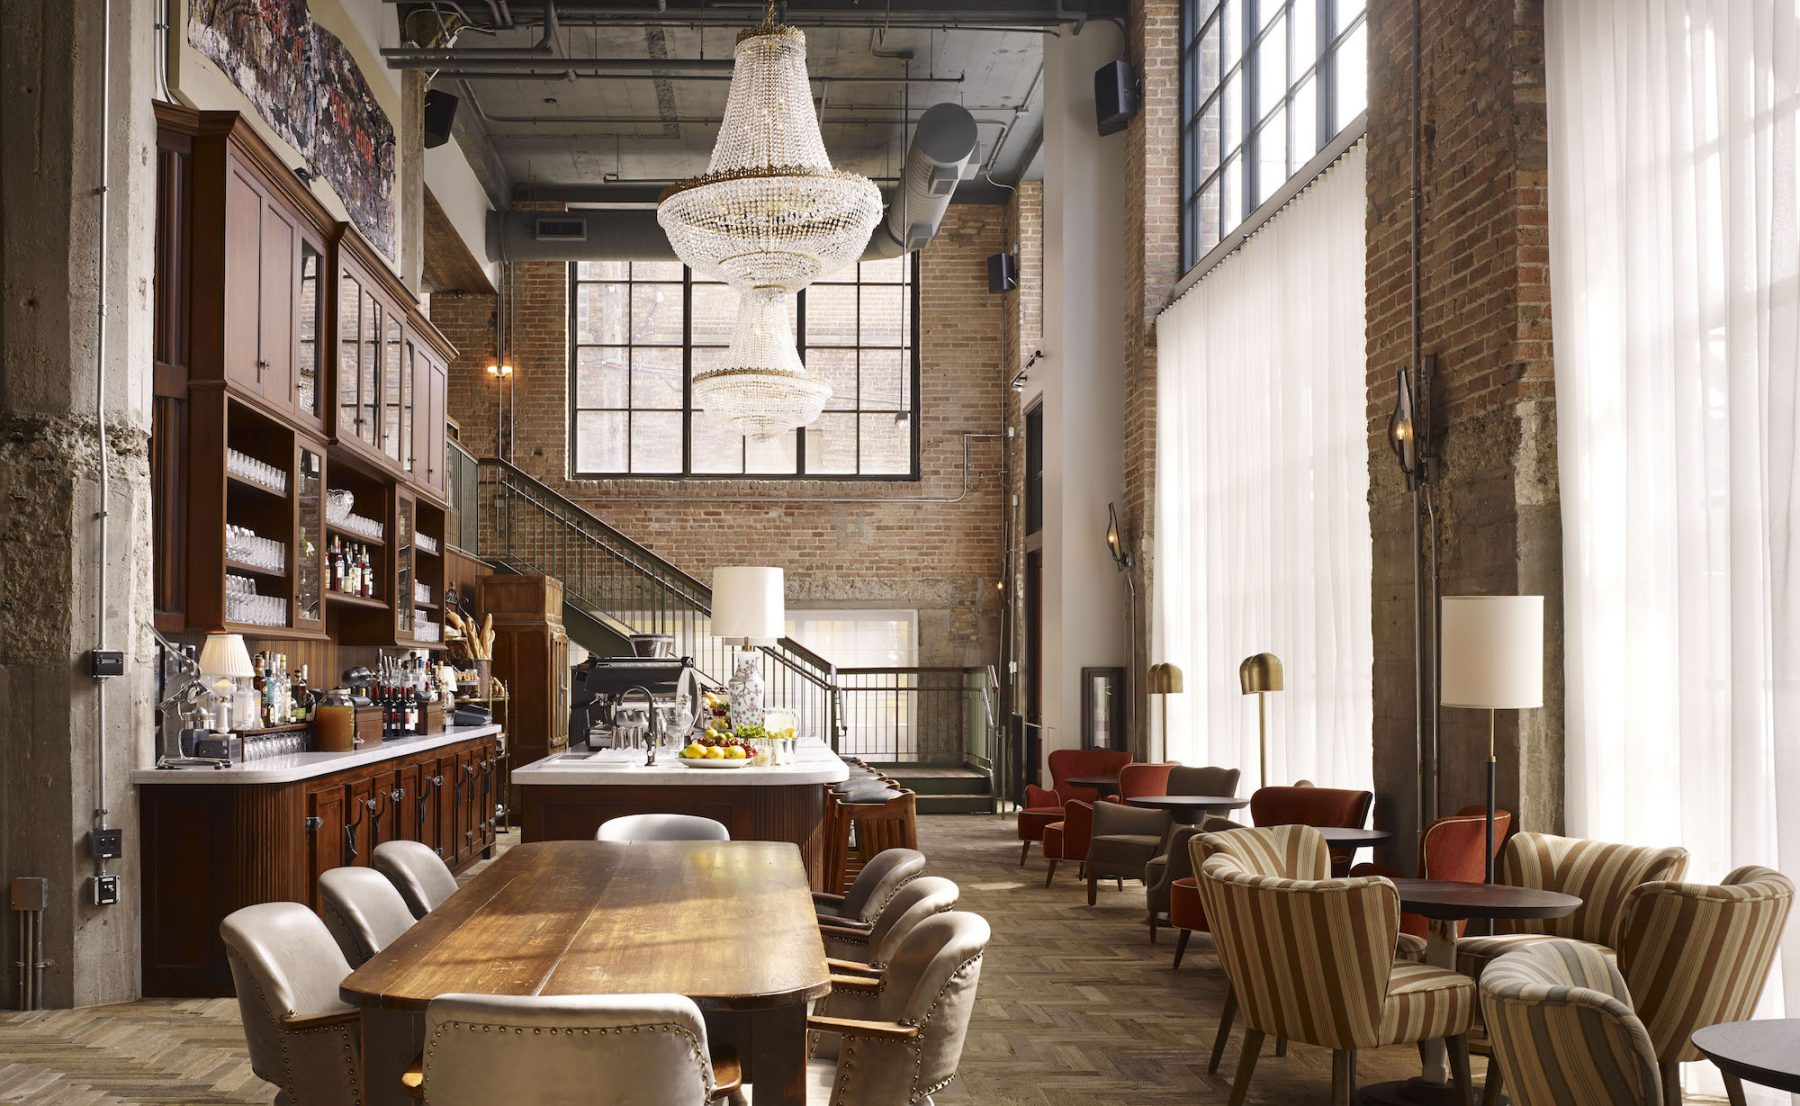 Culinary aesthetic movement: 6 beautiful Chicago restaurants